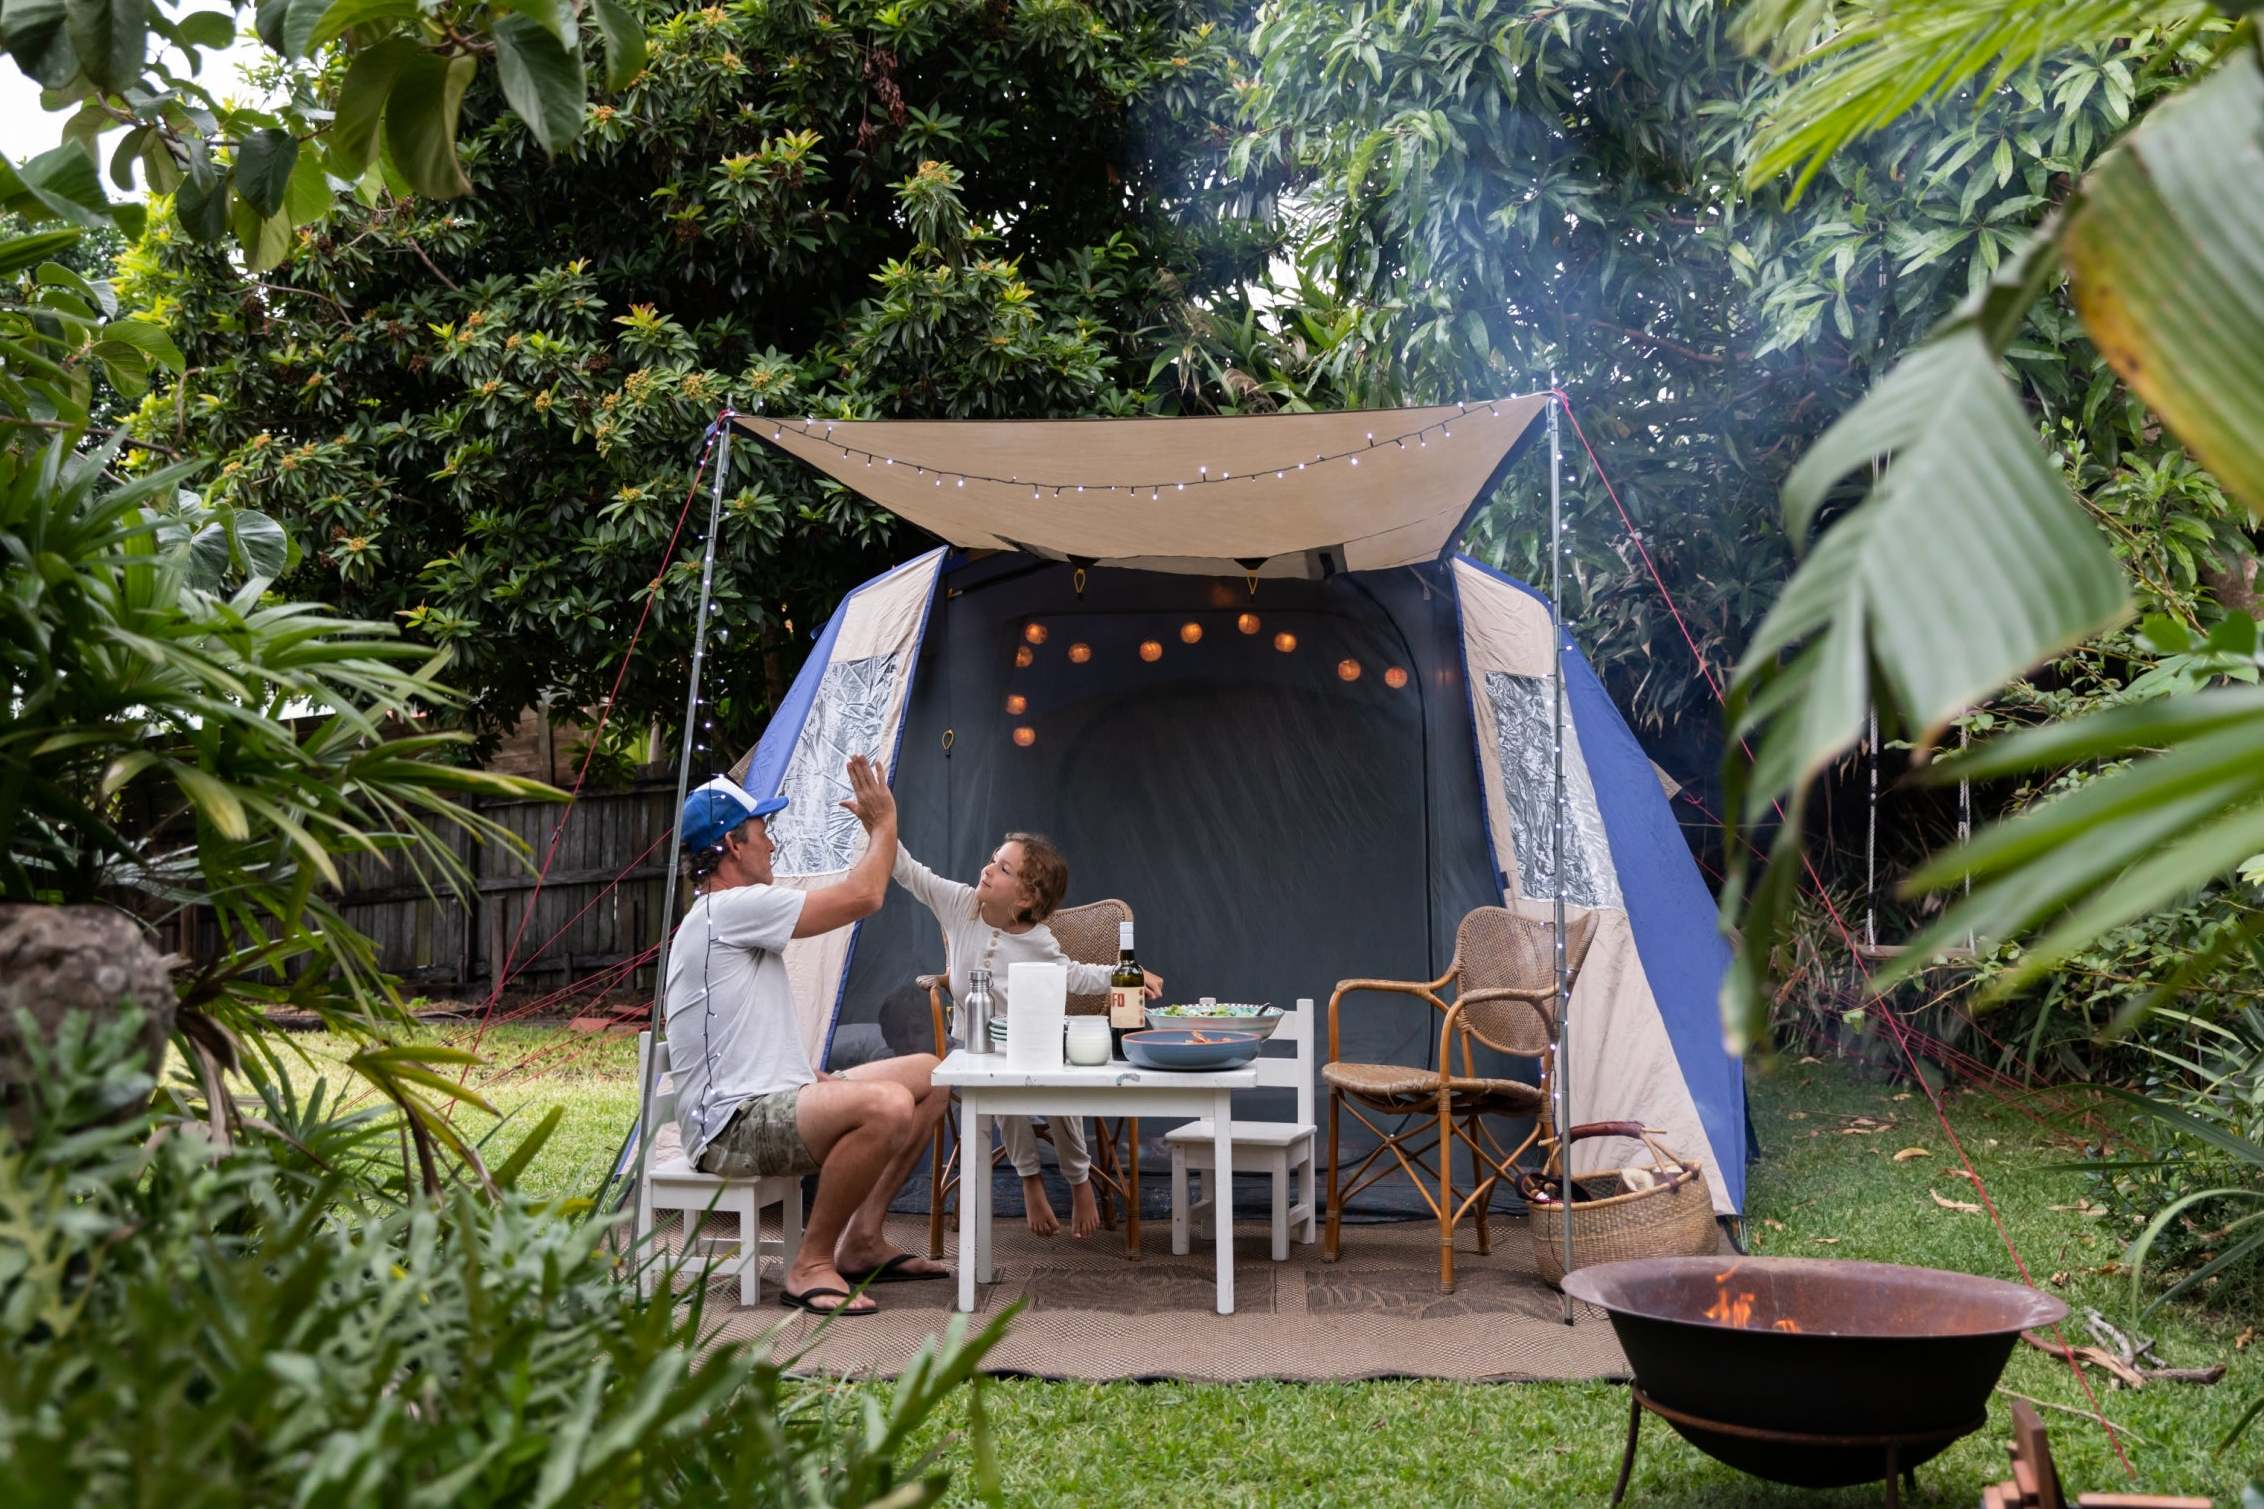 How to enjoy a camping trip in your own back garden